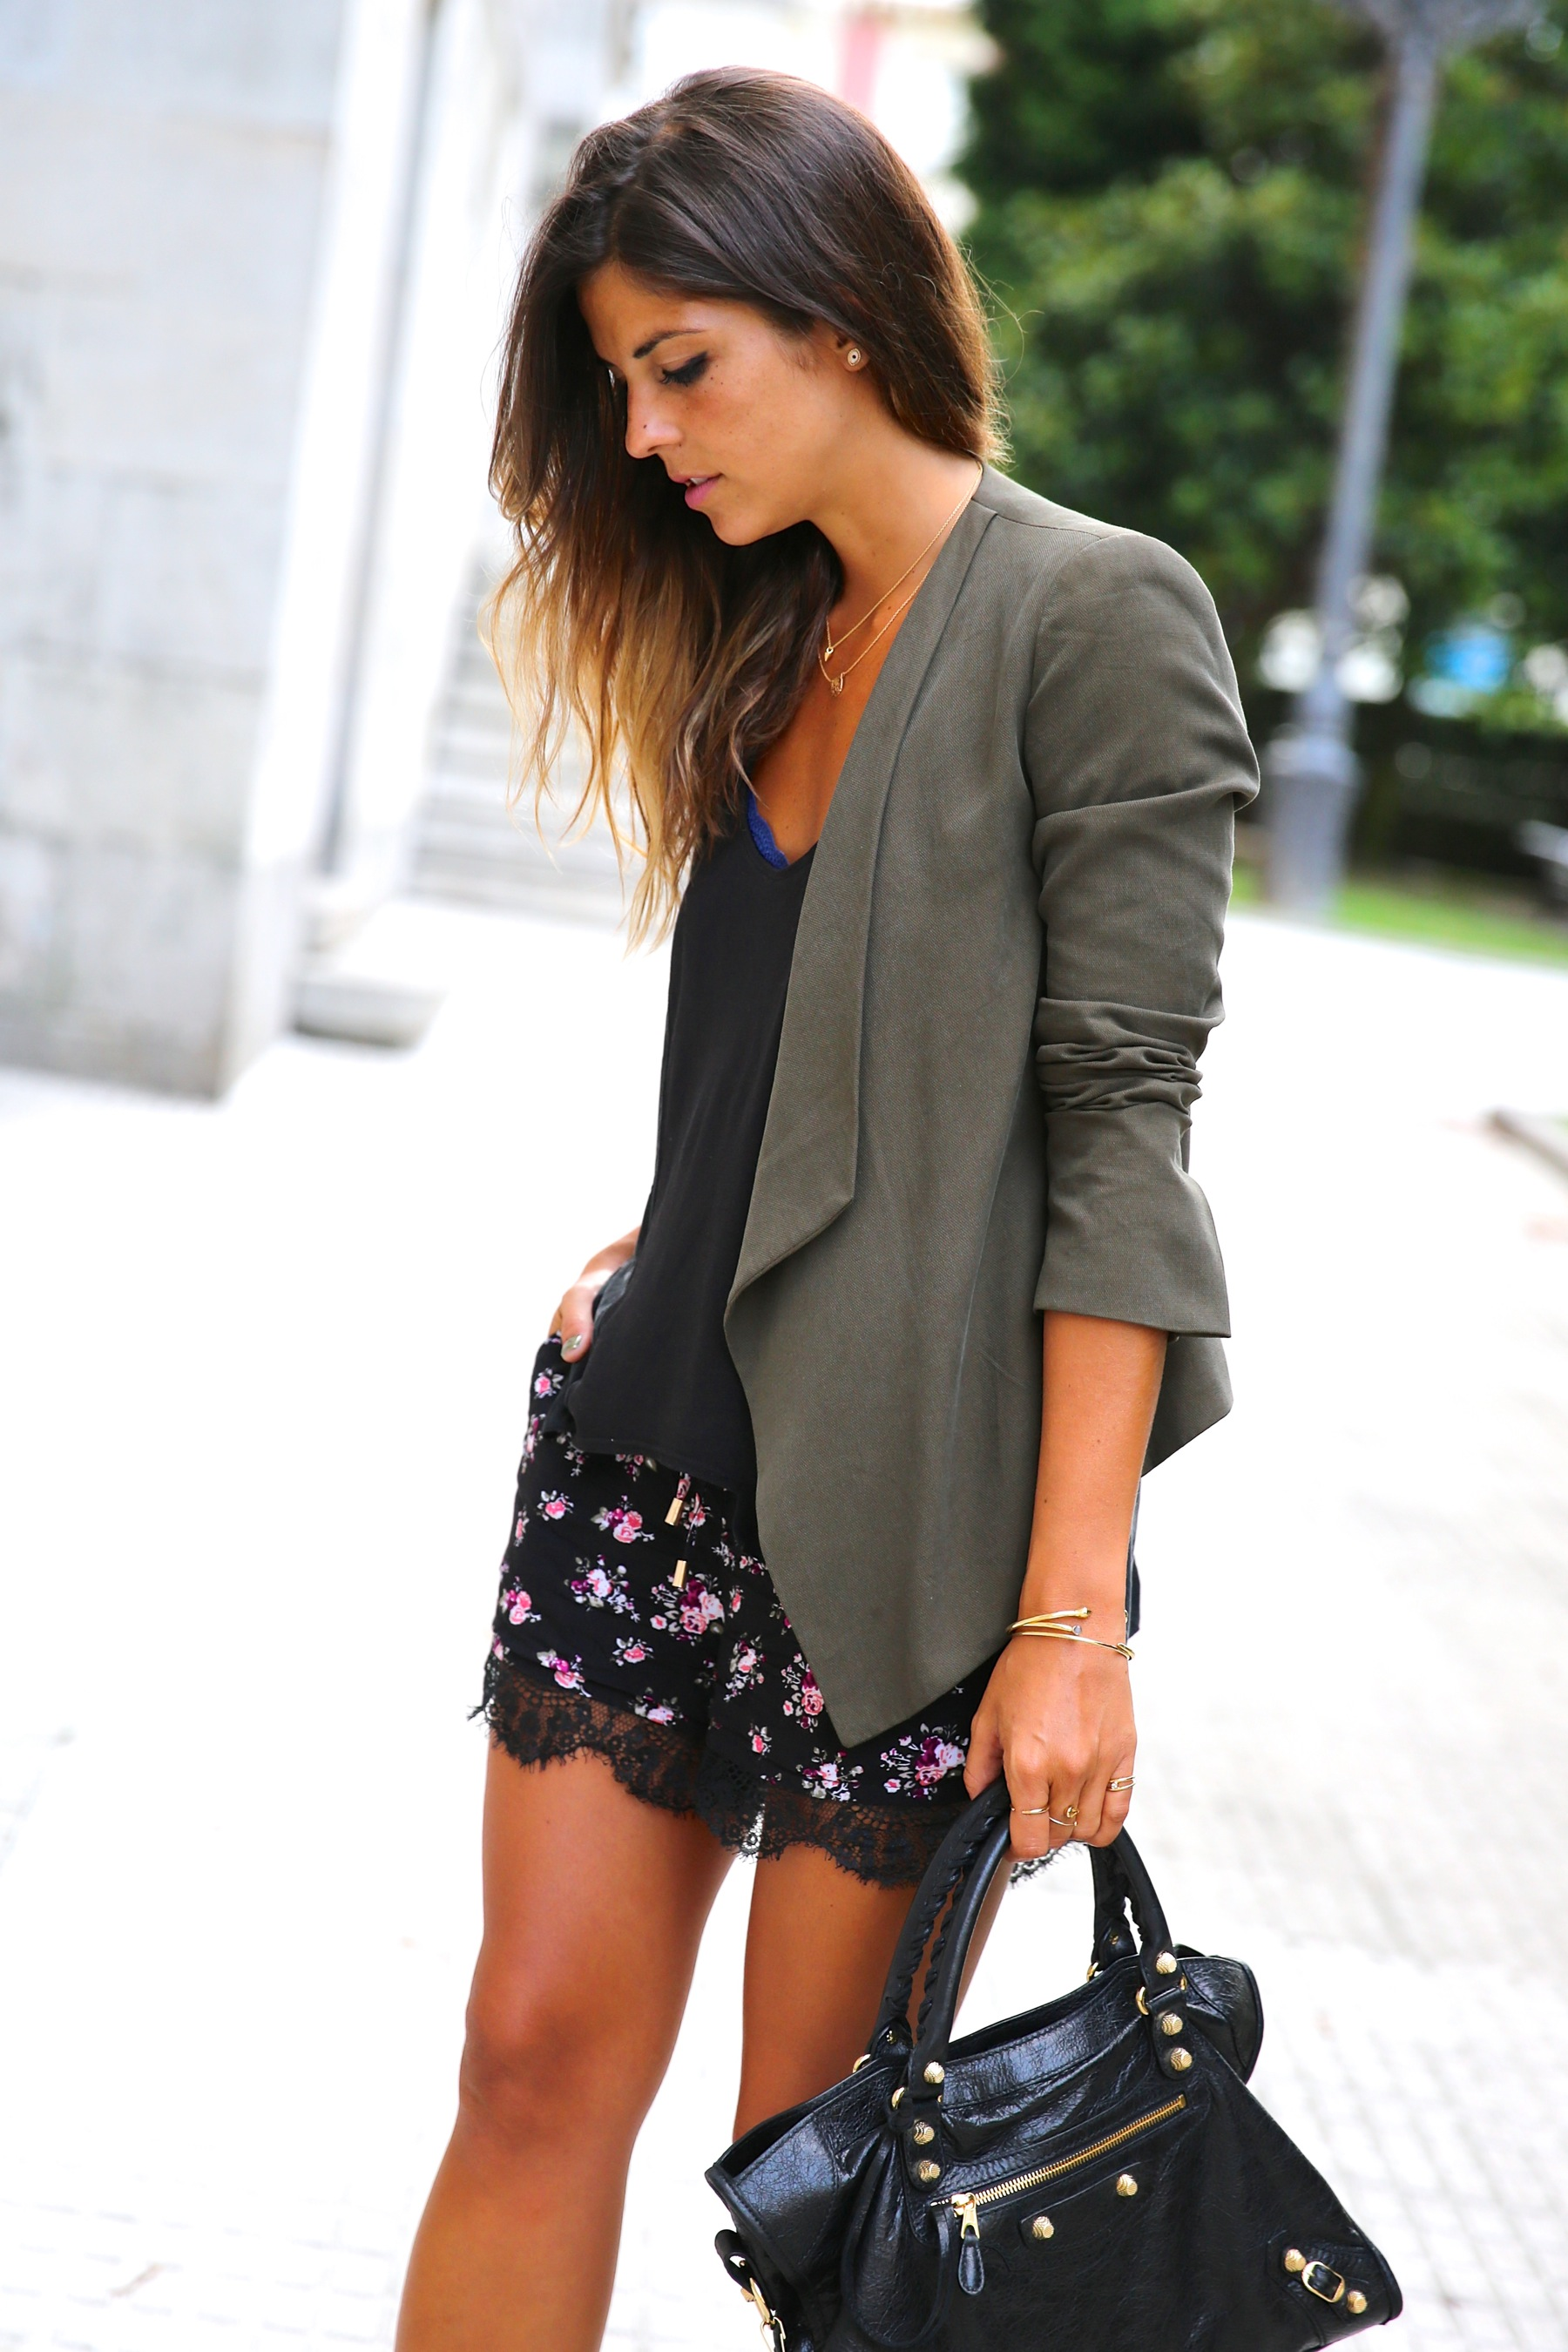 Natalia Cabezas is wearing a pair of floral print shorts from Vila Buyleward, blazer from Zara and a bag from Balenciaga